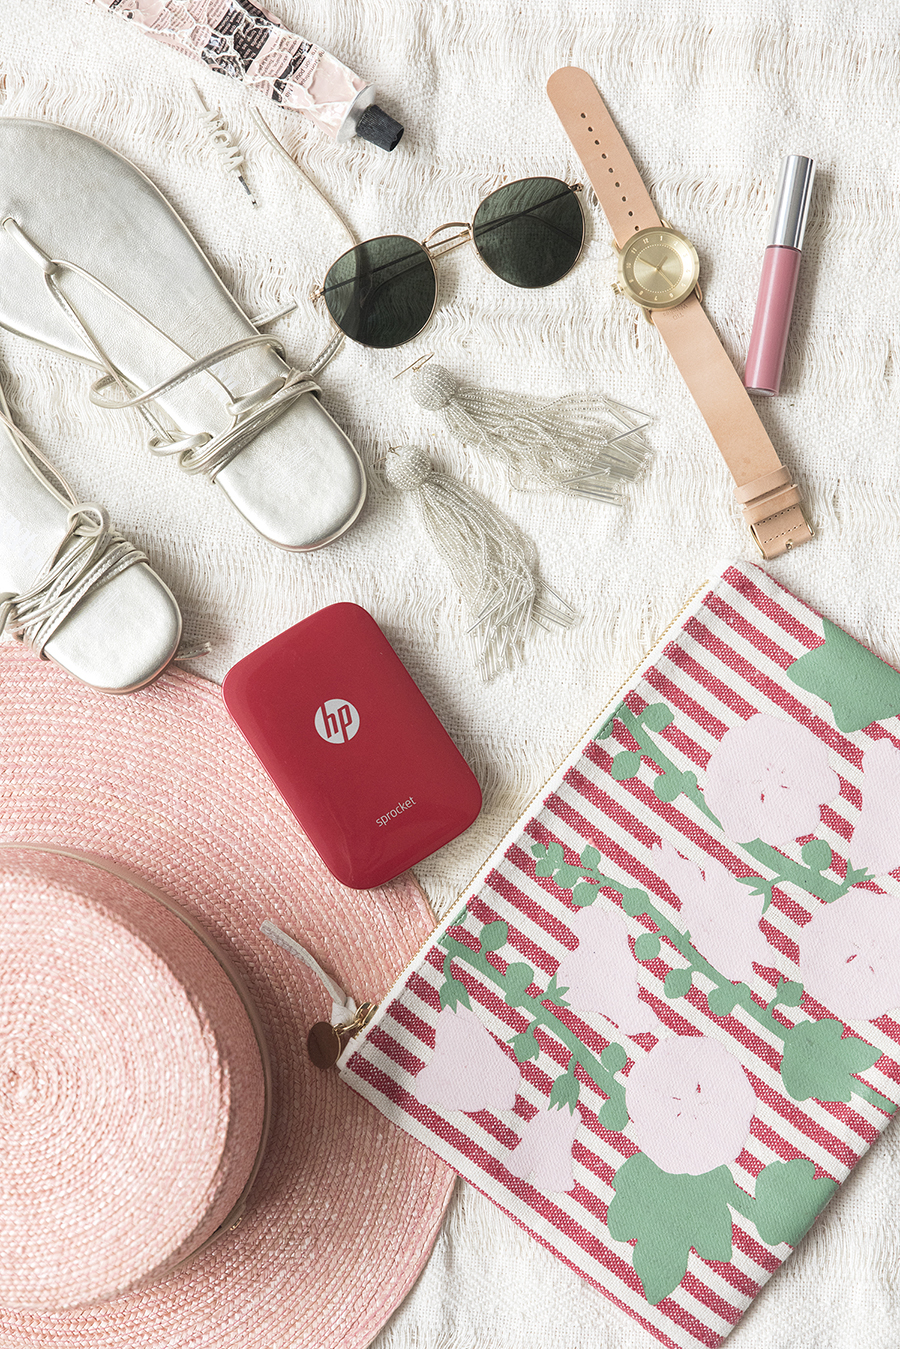 HP Sprocket Roja (3). HP Sprocket